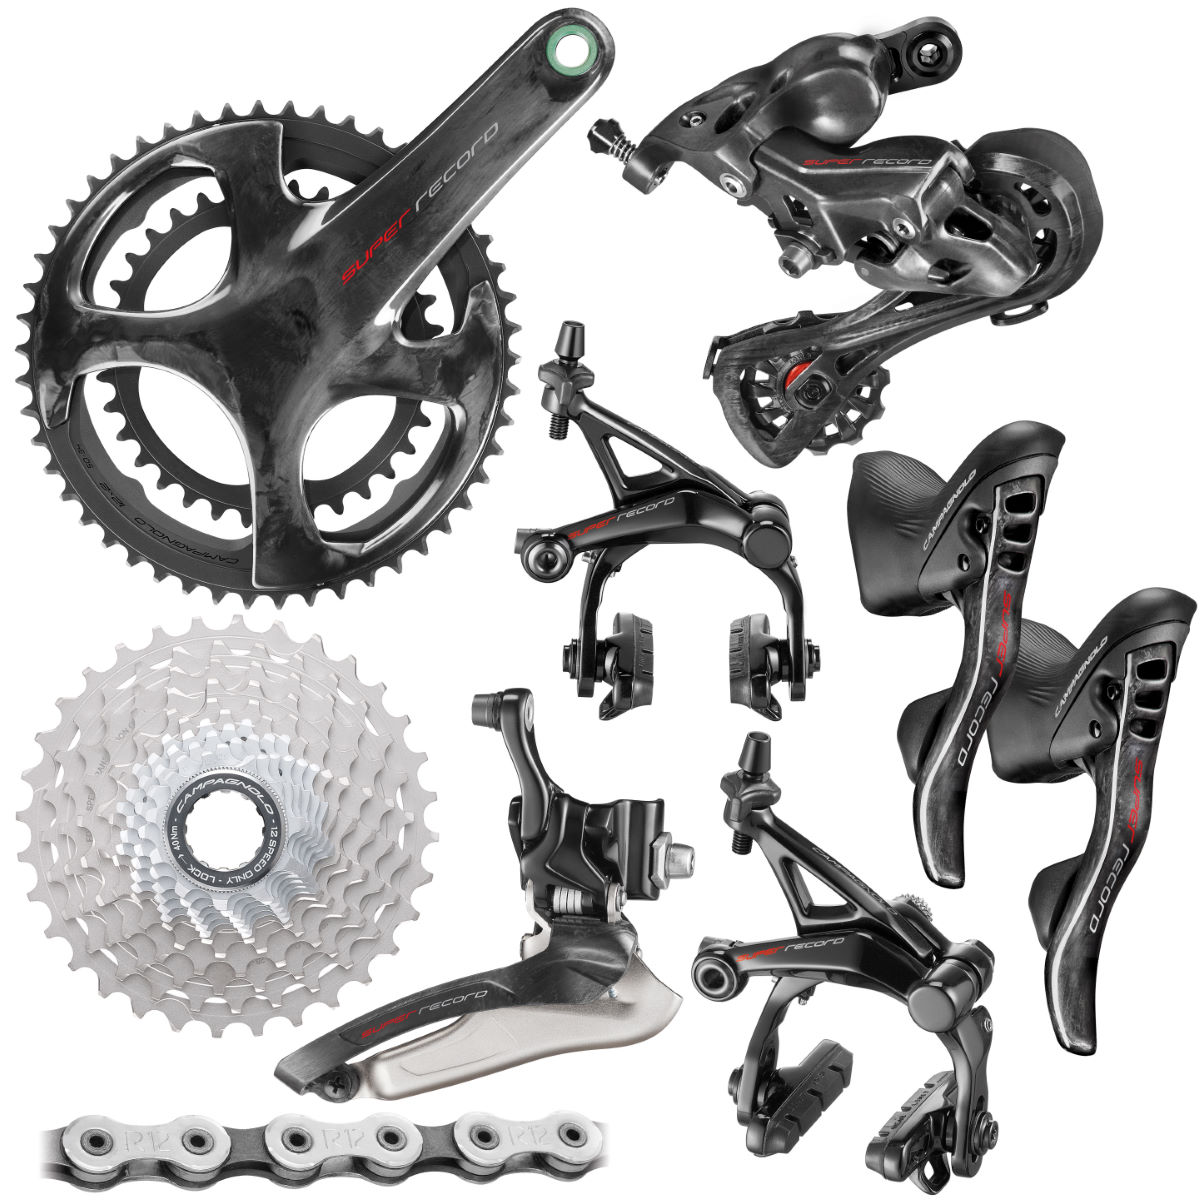 Campagnolo Super Record Groupset (12 Speed) - 172.5mm 34/50-11/32t